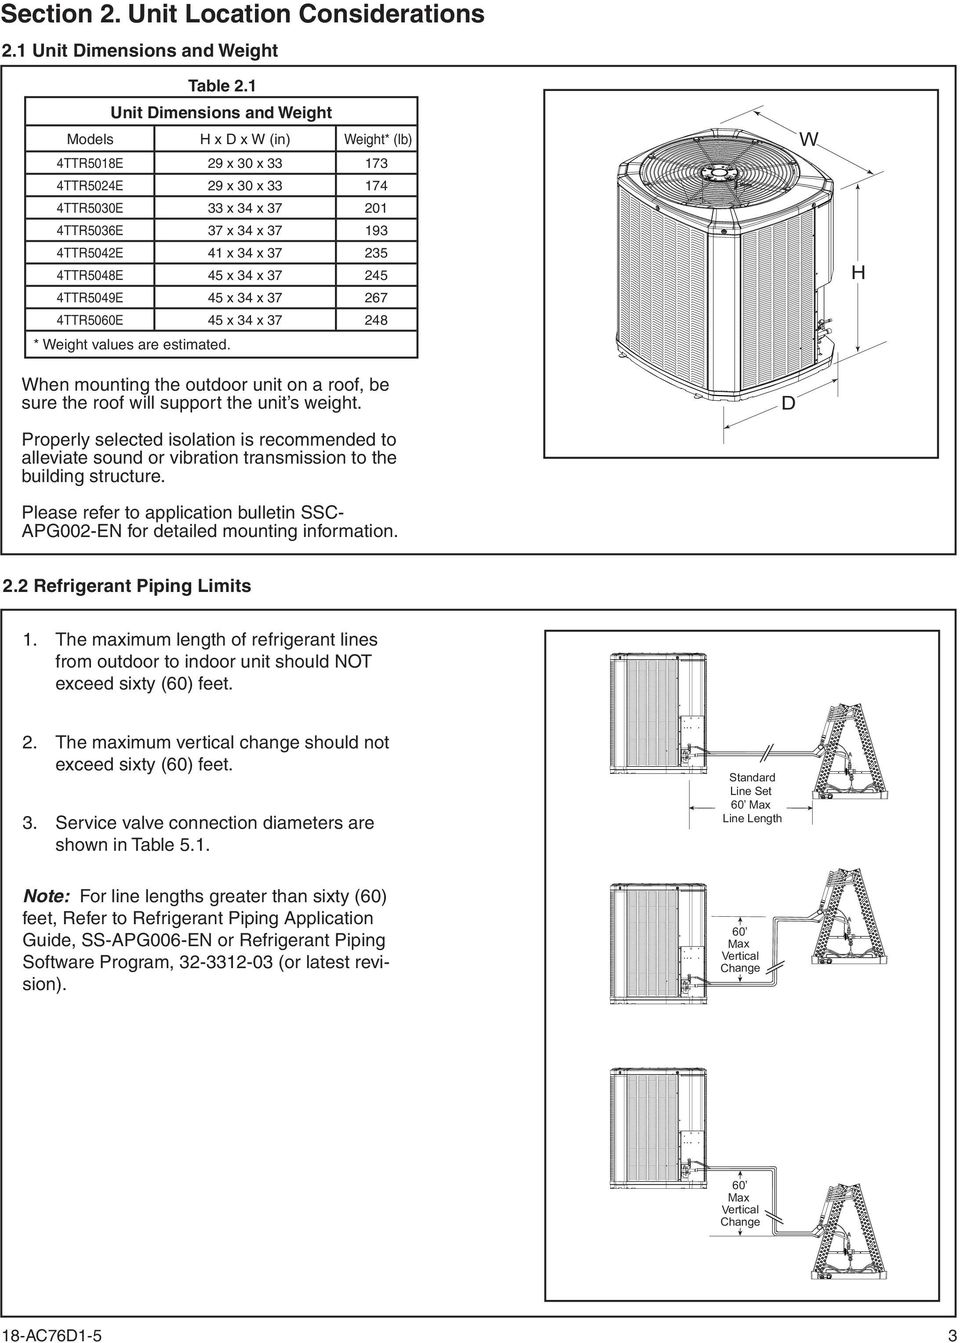 All Phases Of This Installation Must Comply With National State And Tyler Refrigeration Wiring Diagrams 4ttr5048e 45 X 34 37 245 4ttr5049e 267 4ttr5060e